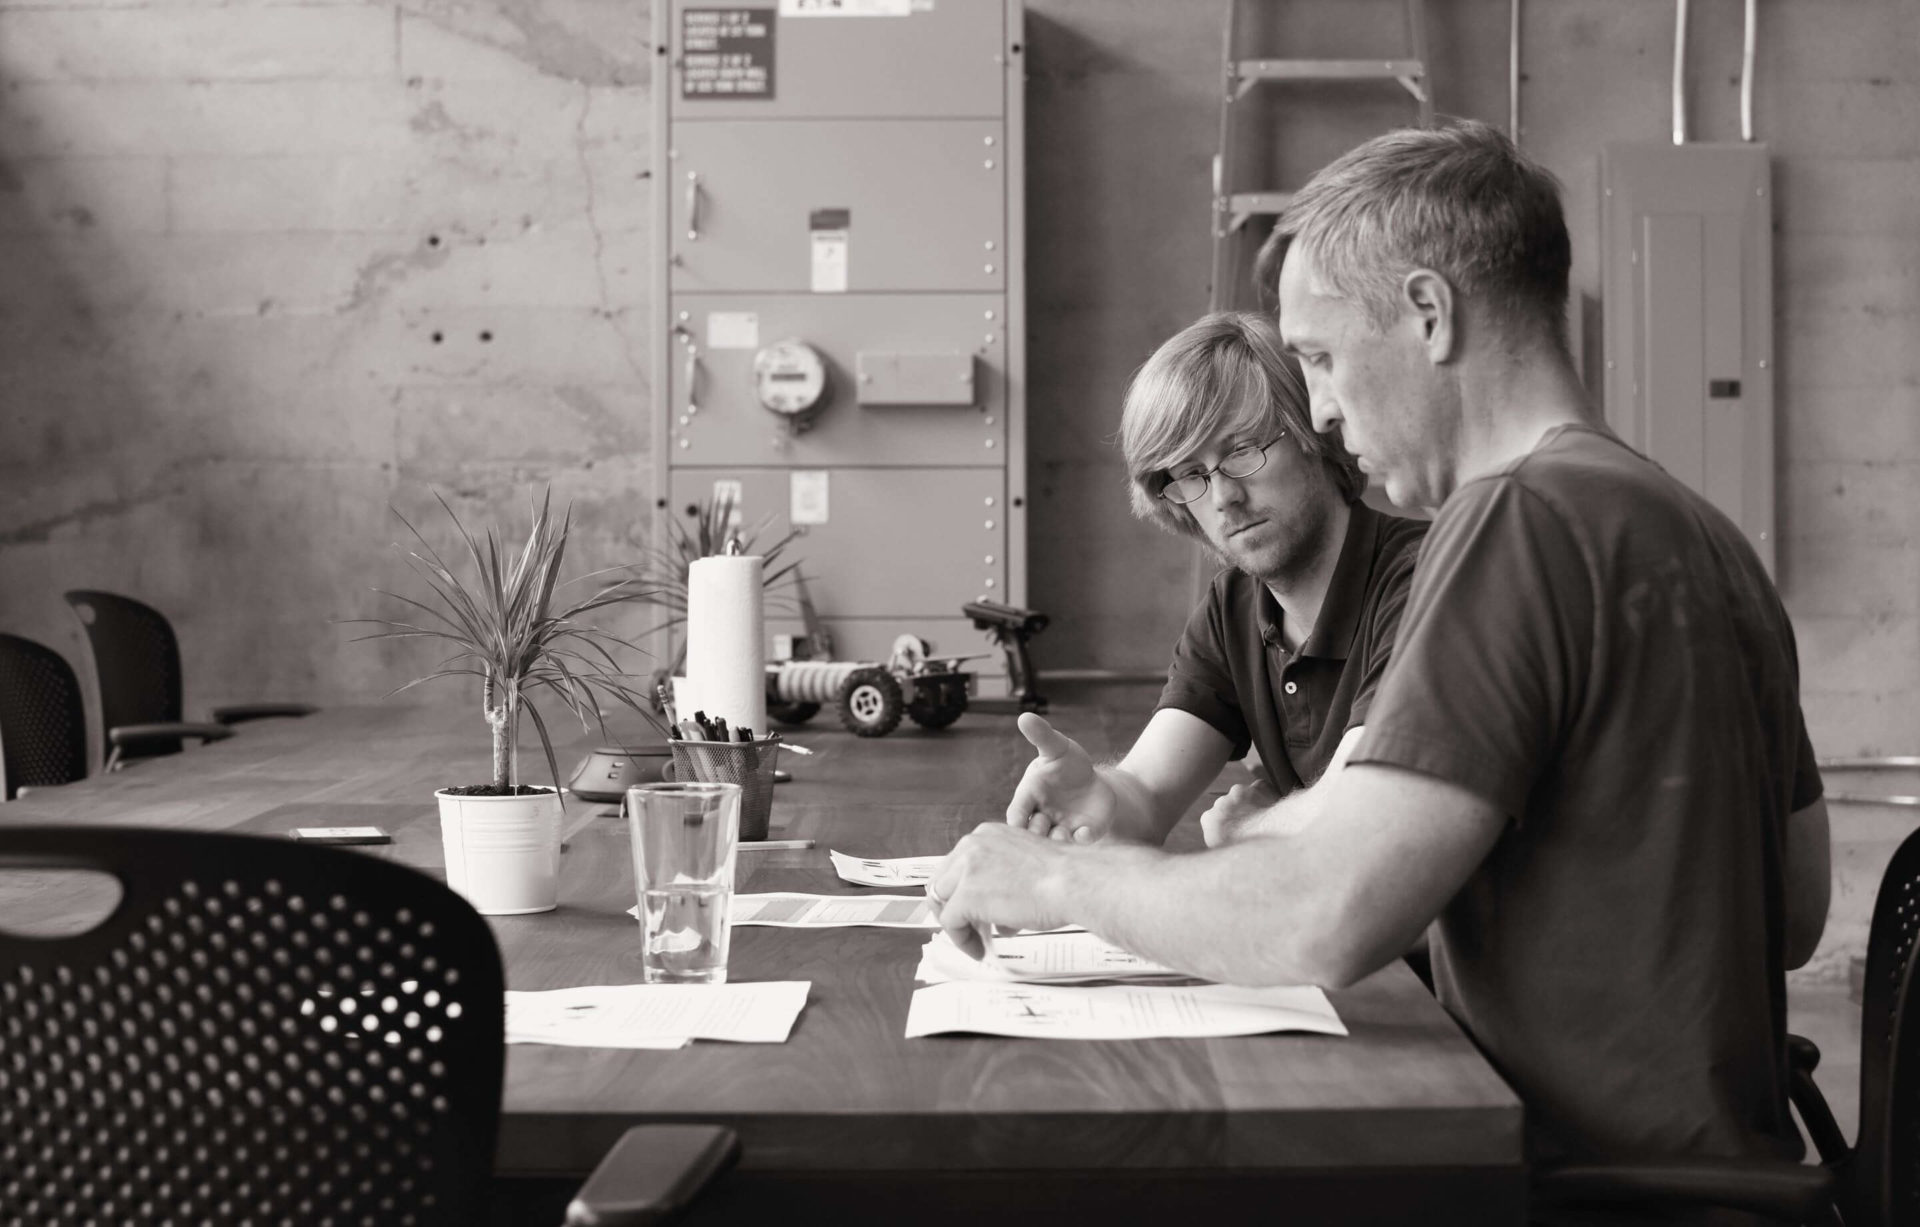 Two Cooper Perkins engineers sitting at a table discussing a project